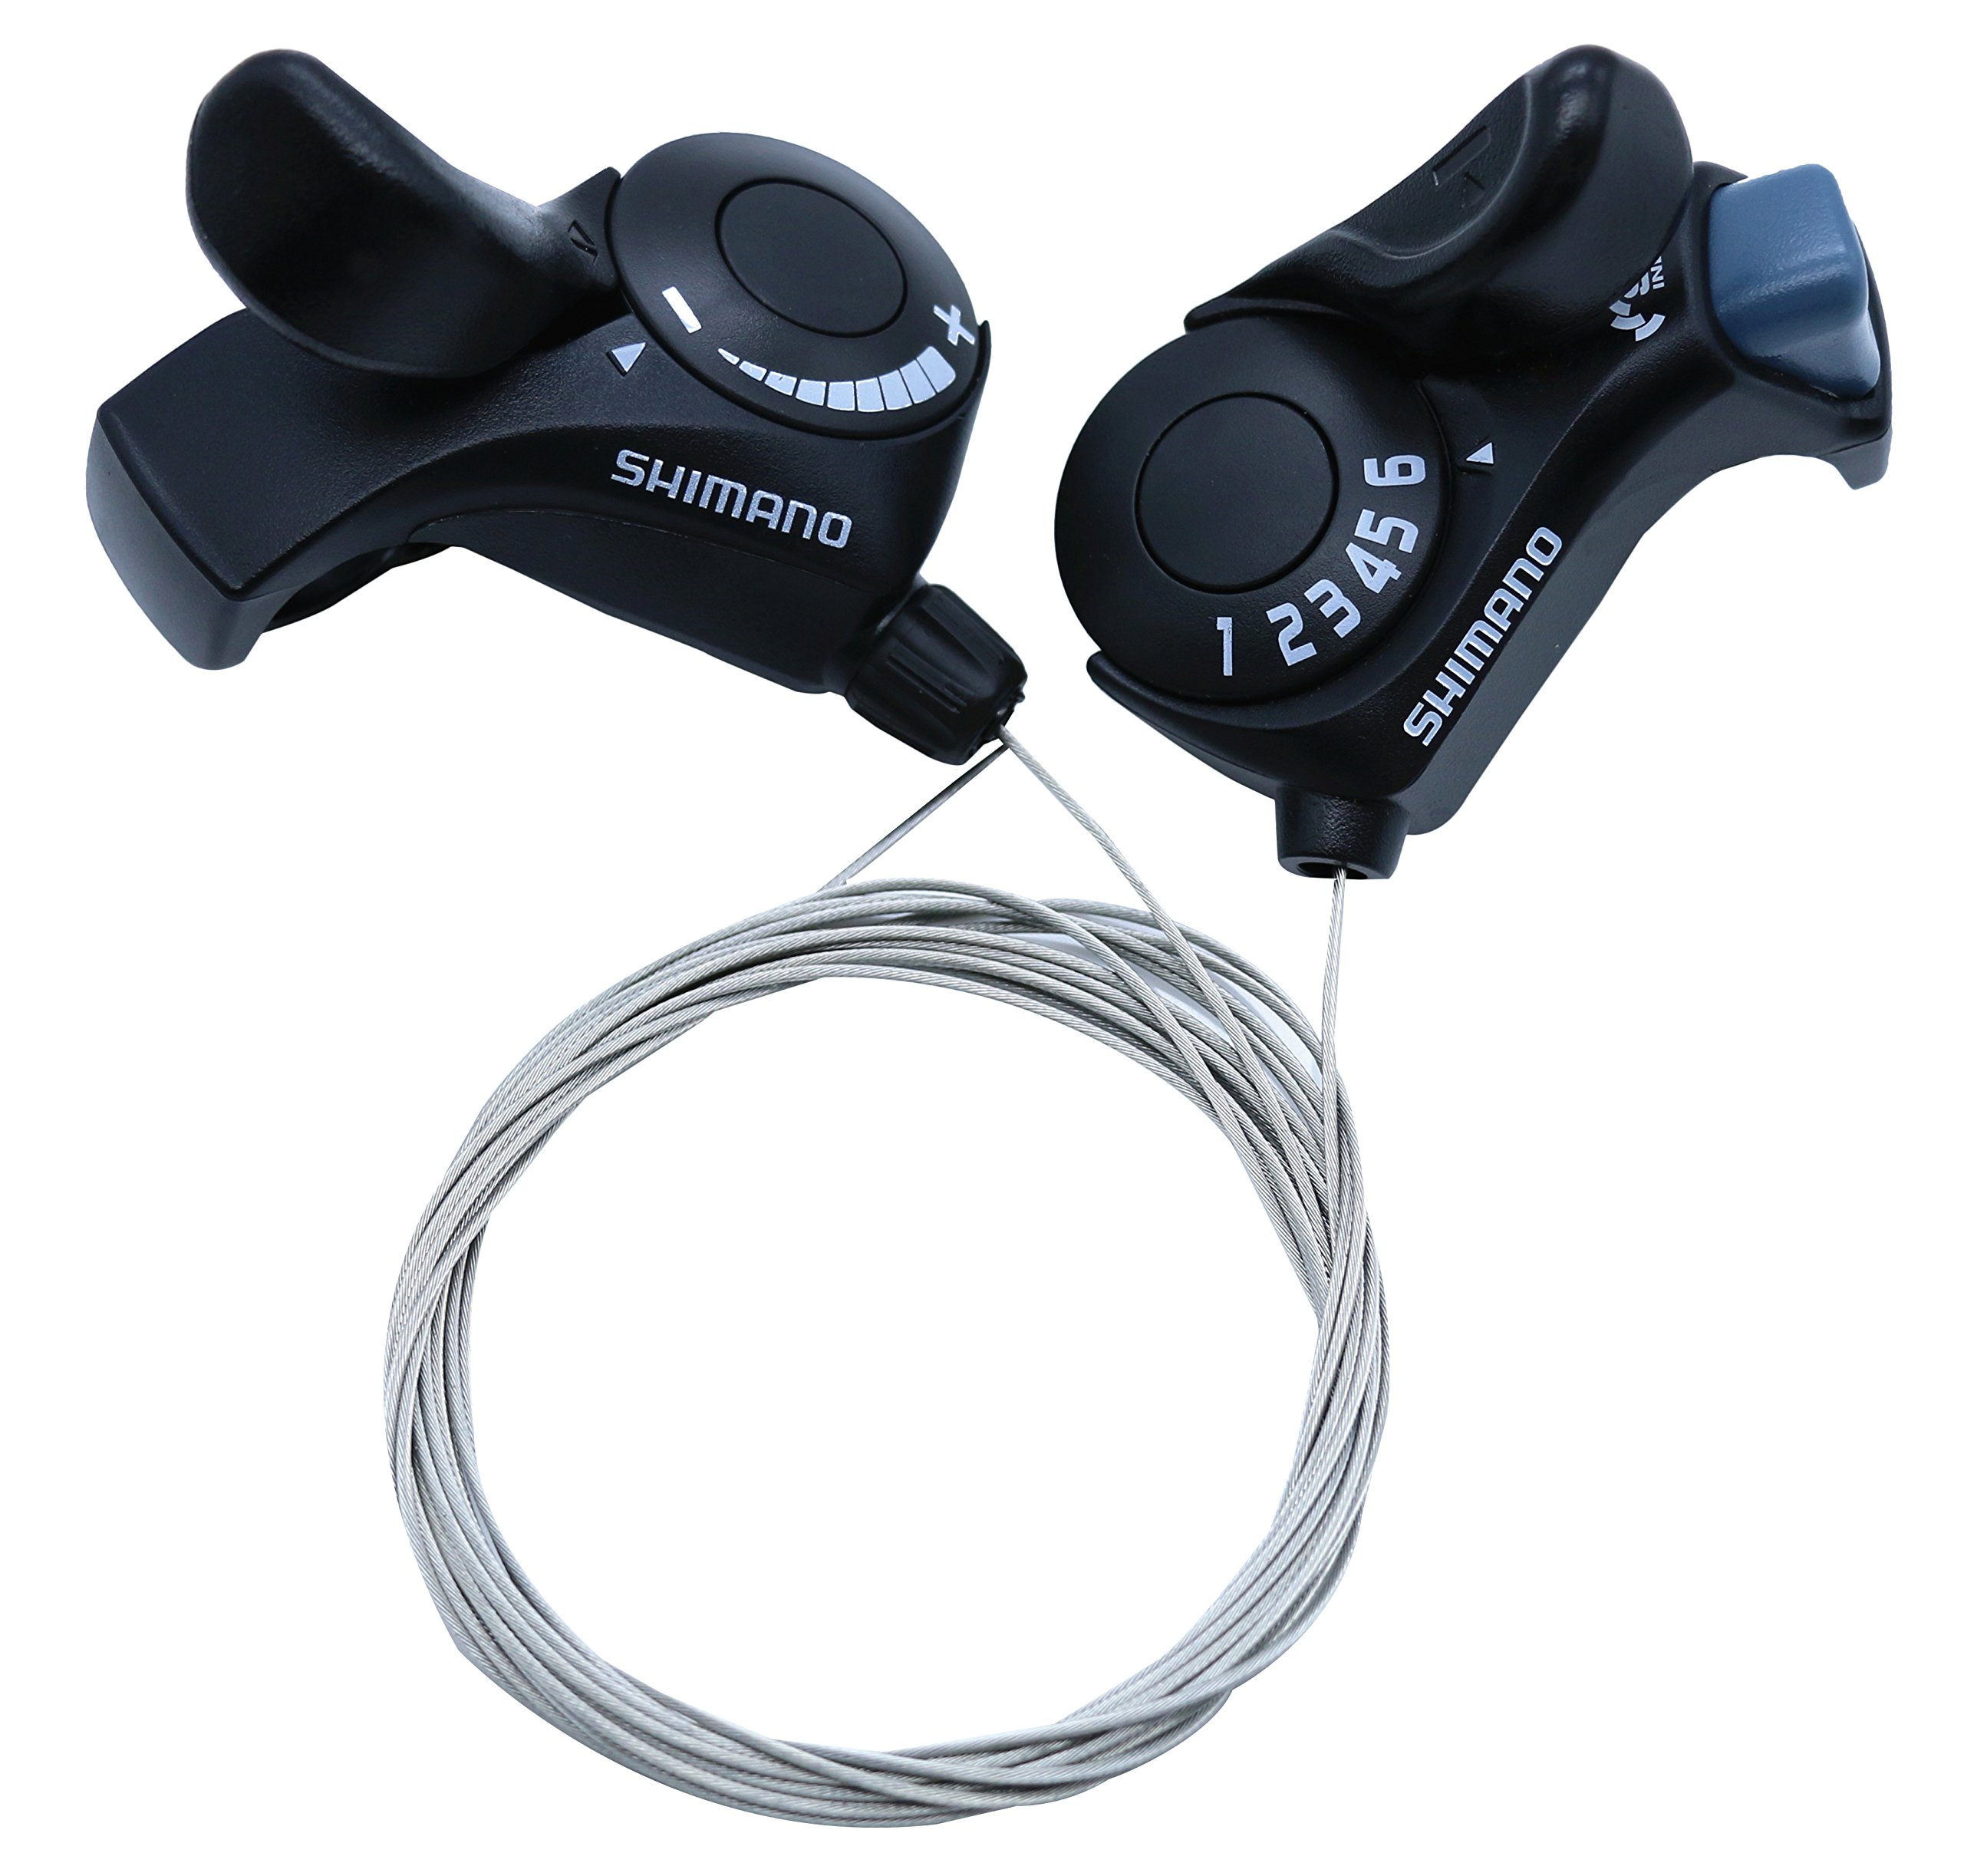 INKESKY Shimano Tourney SL-TX30 3x6 Speed MTB Bike Thumb Gear Shifter with Inner Shift Cables (1 Pair) by INKESKY (Image #6)